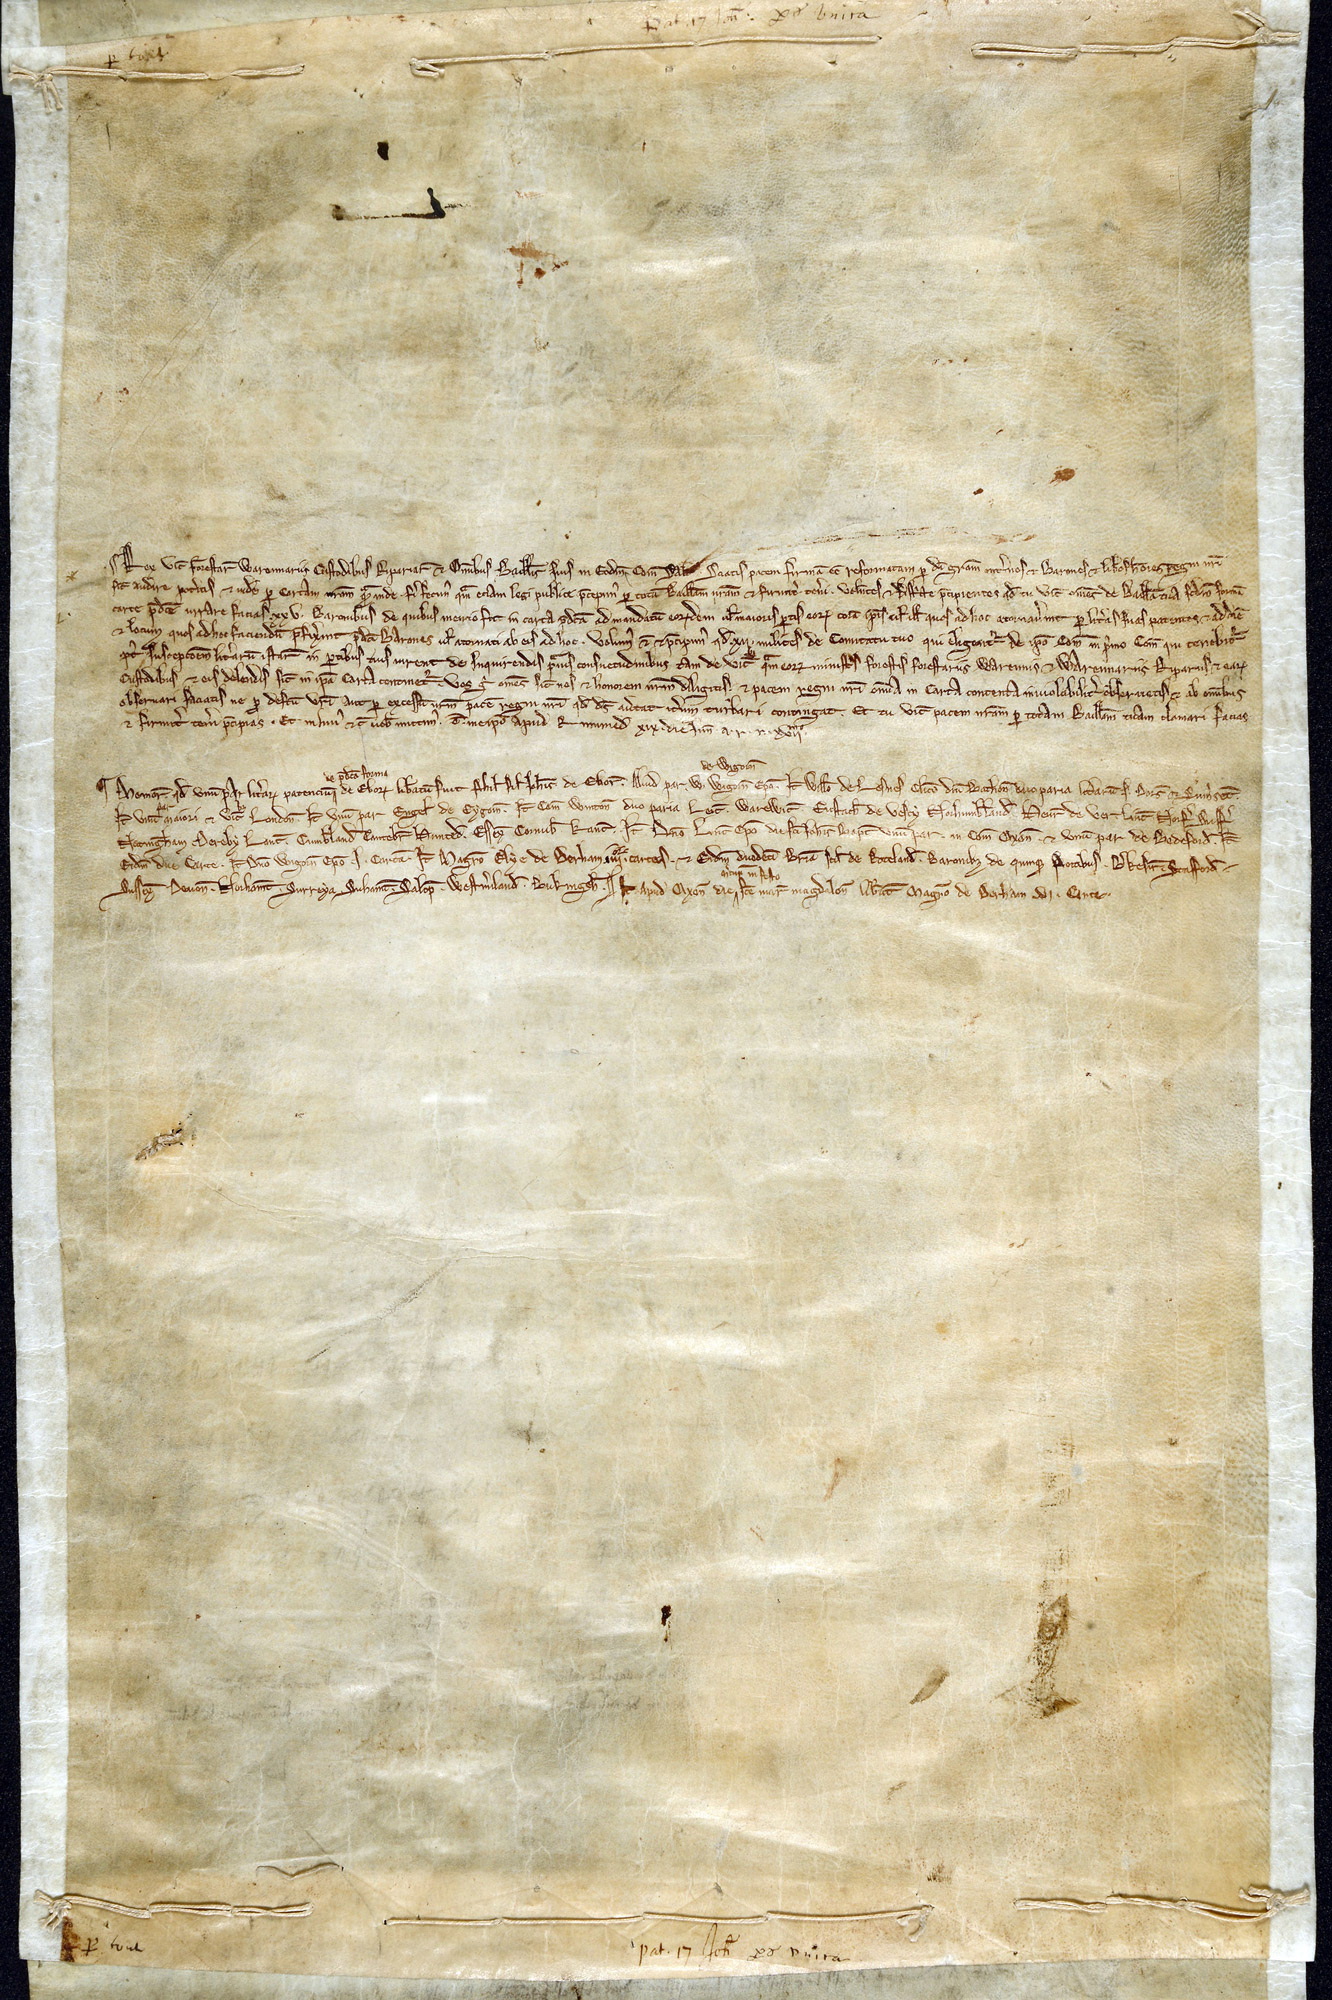 Memorandum of the distribution of copies of Magna Carta